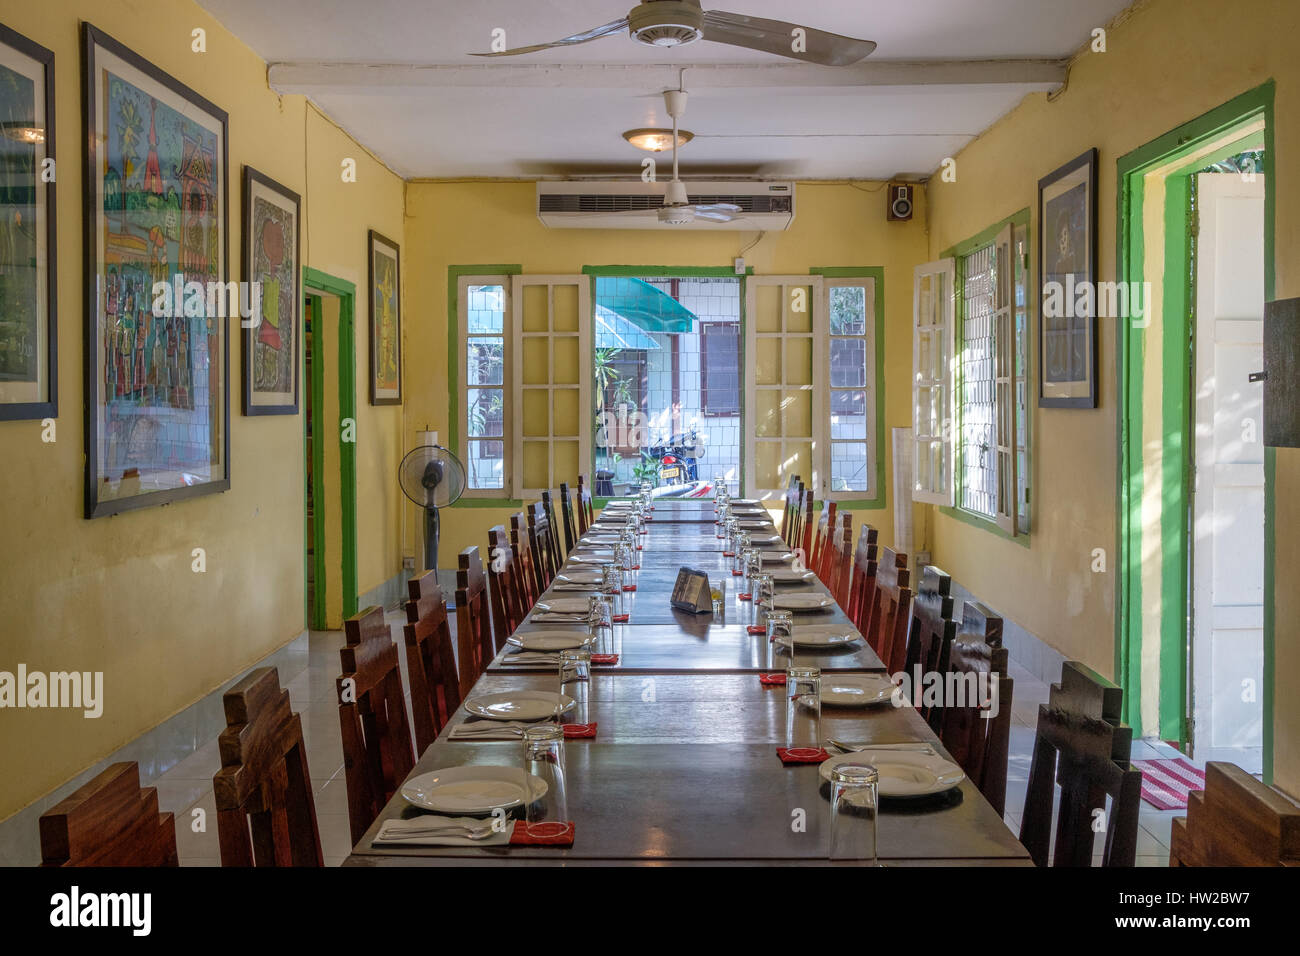 Simple French Colonial Style Interior In Vientiane Laos With French  Colonial Furniture Style